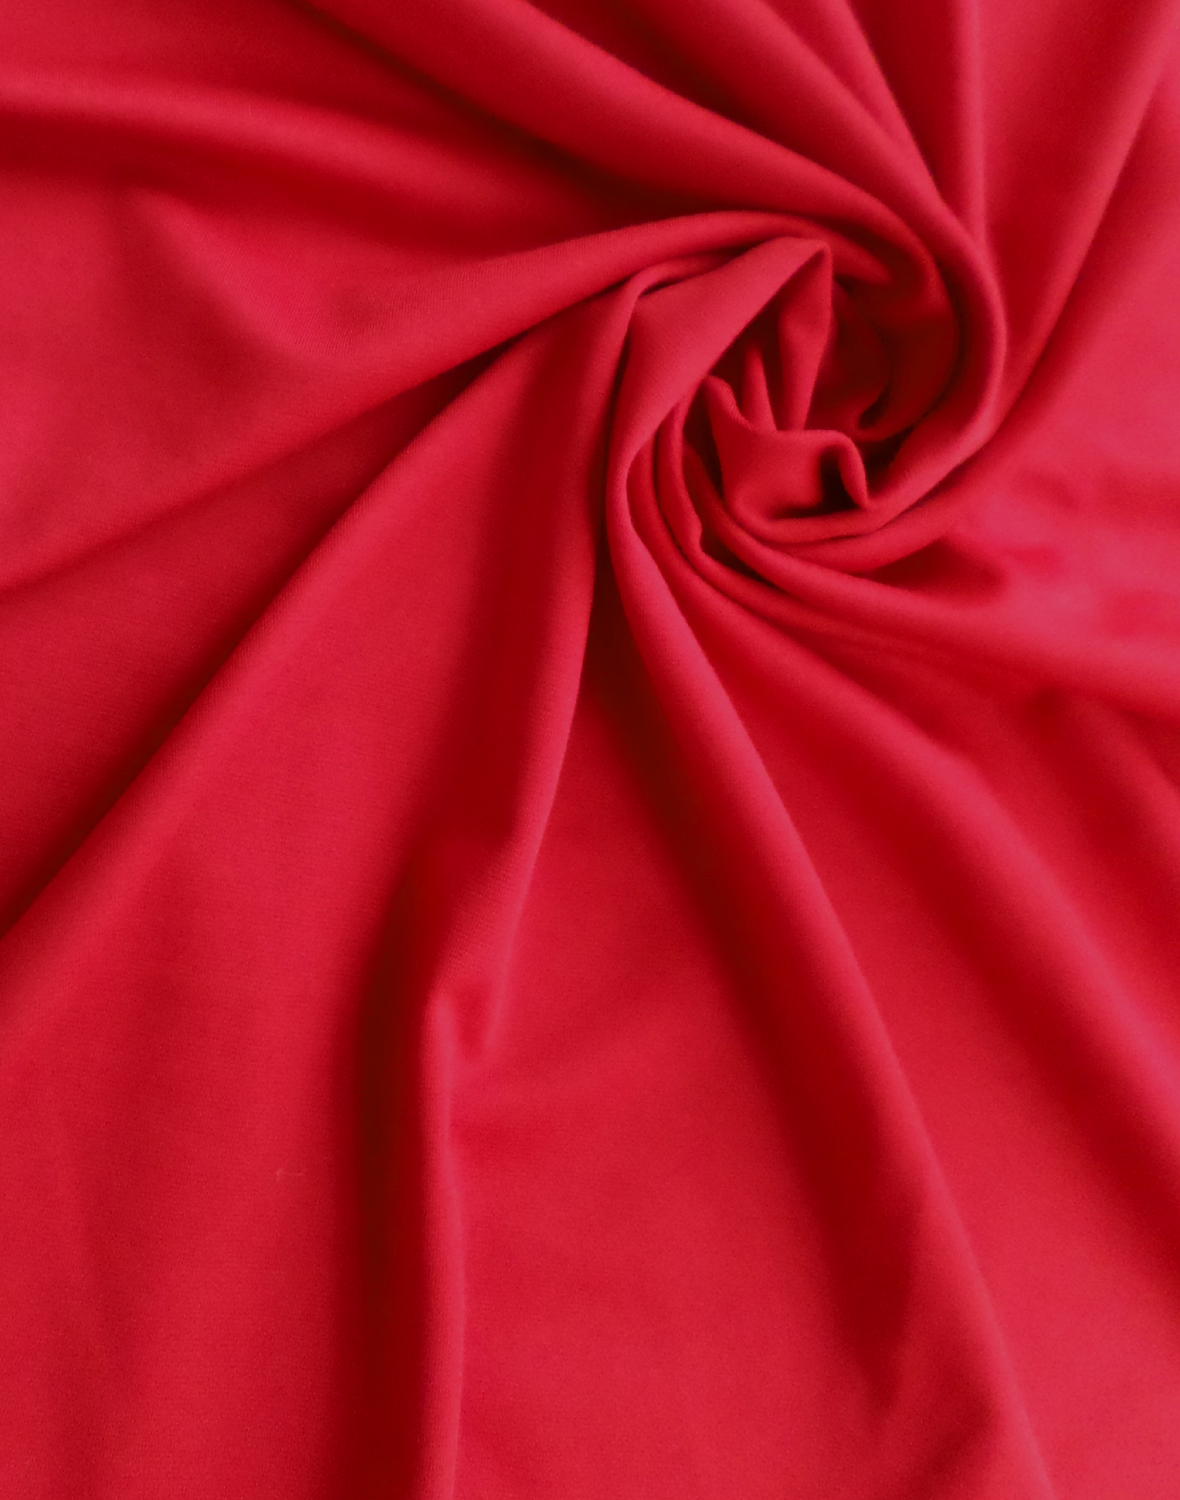 Stretch ponte stretch wholesale apparel fabric for Apparel fabric